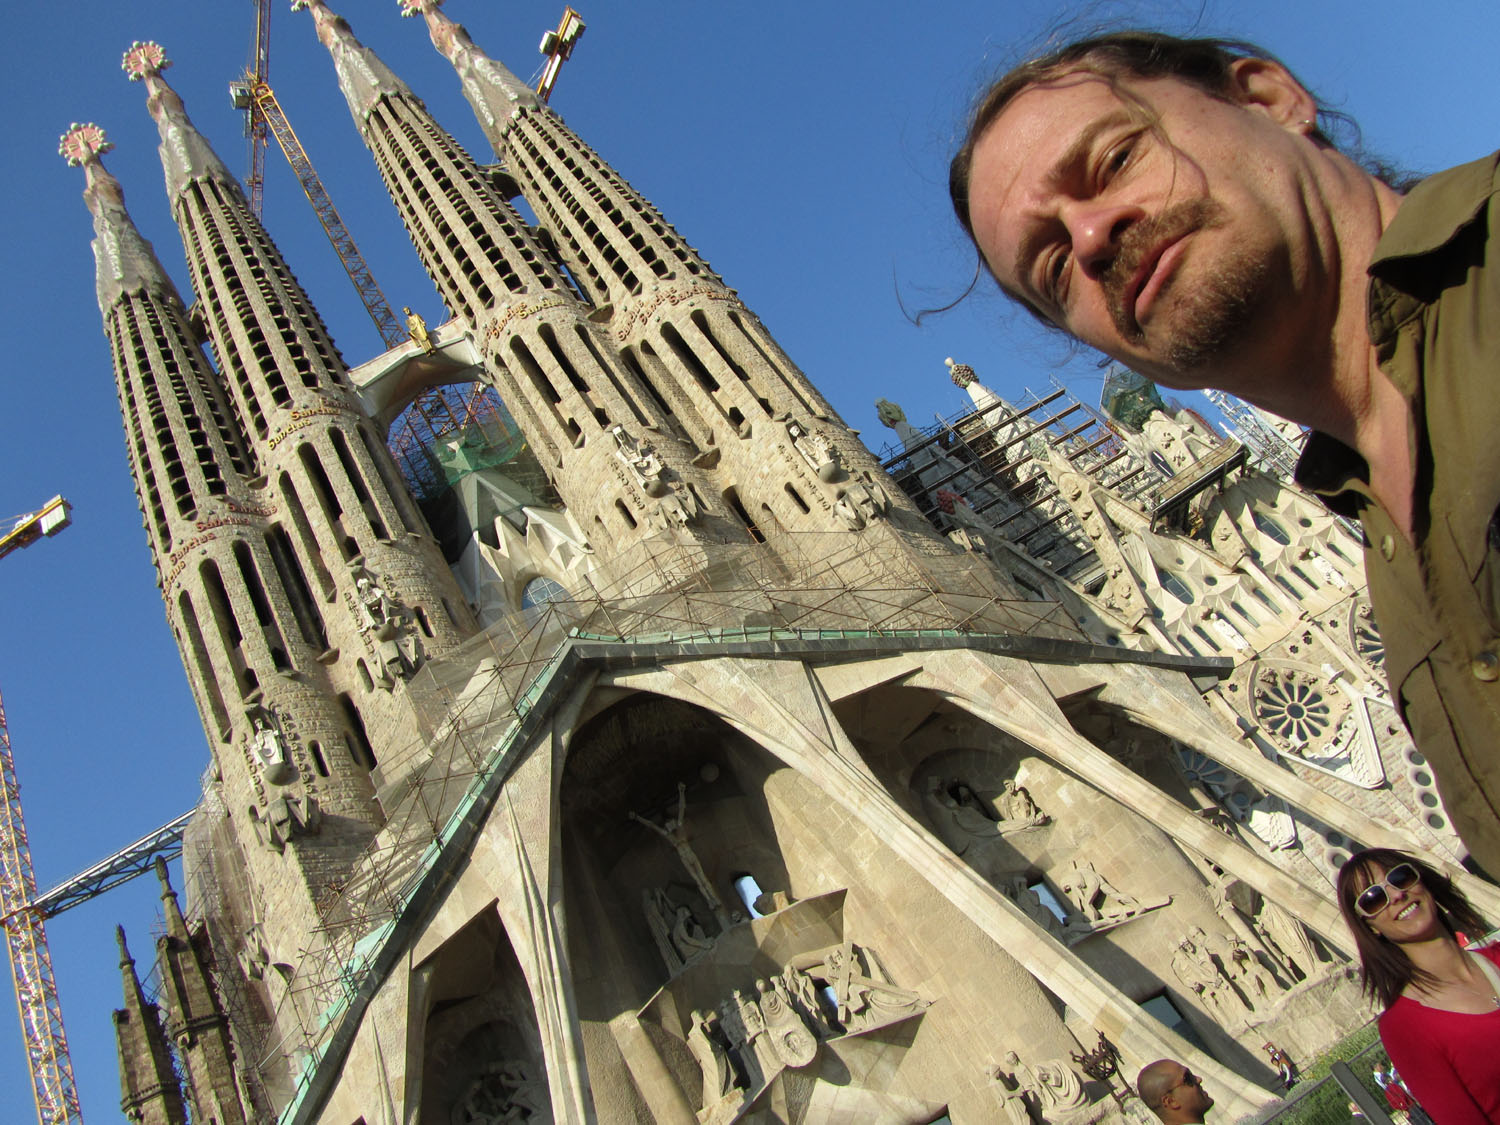 Spain-Barcelona-Gaudi-Sagrada-Familia-Self-Portrait